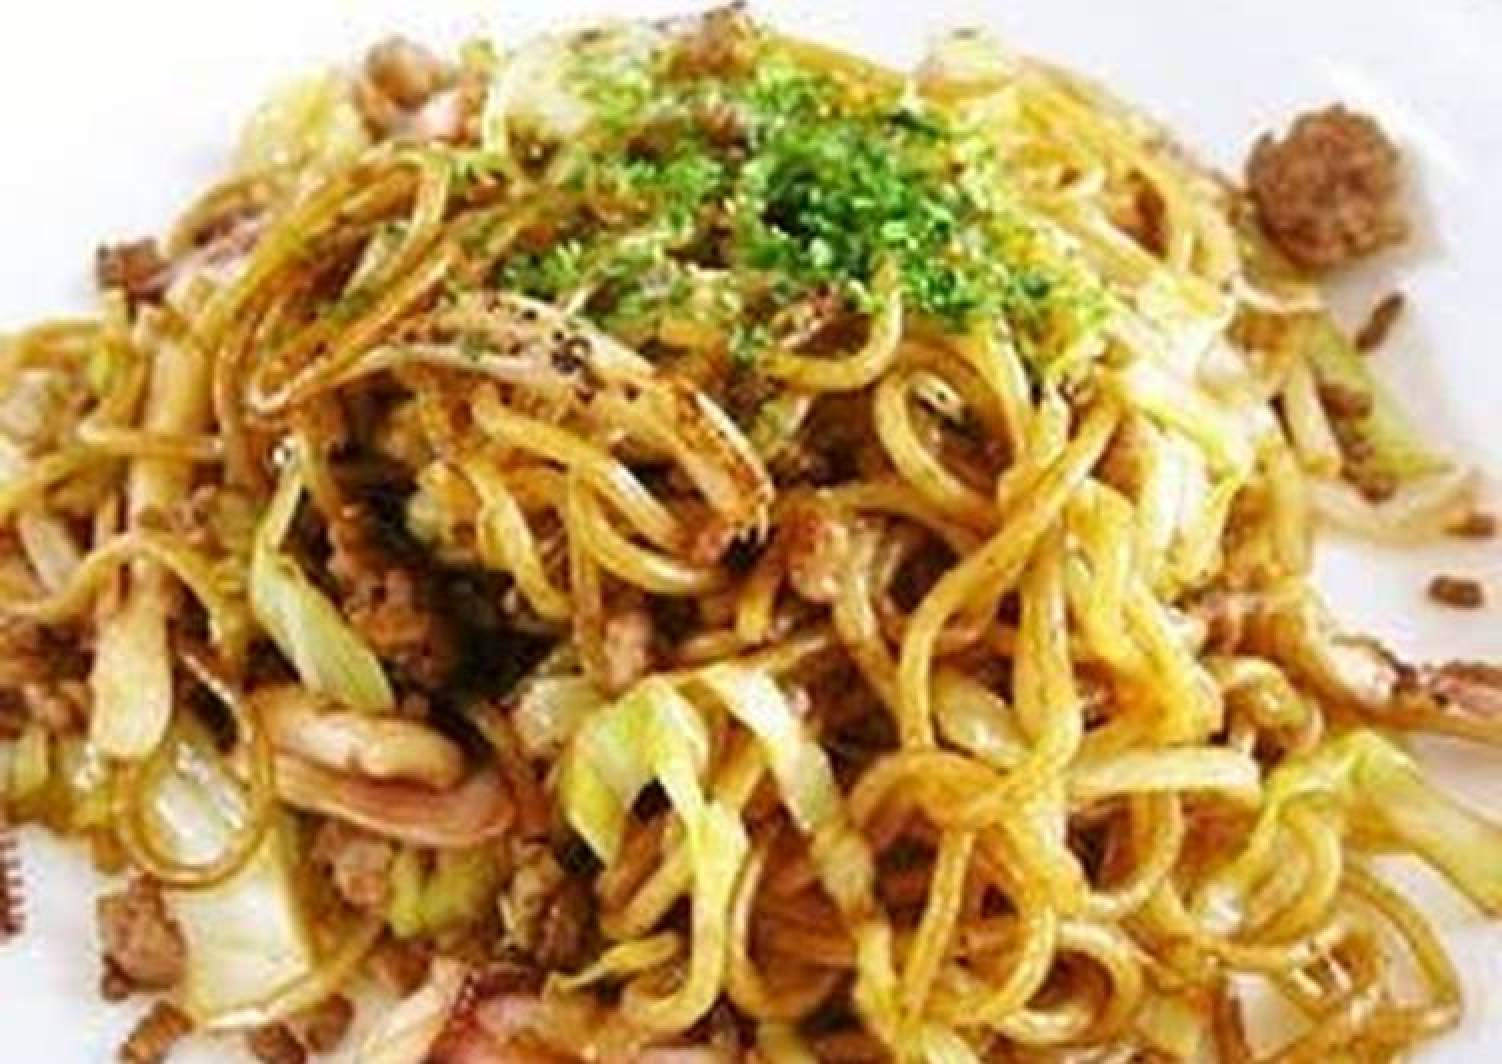 Ika Yakisoba (Panfried Noodles with Squid)